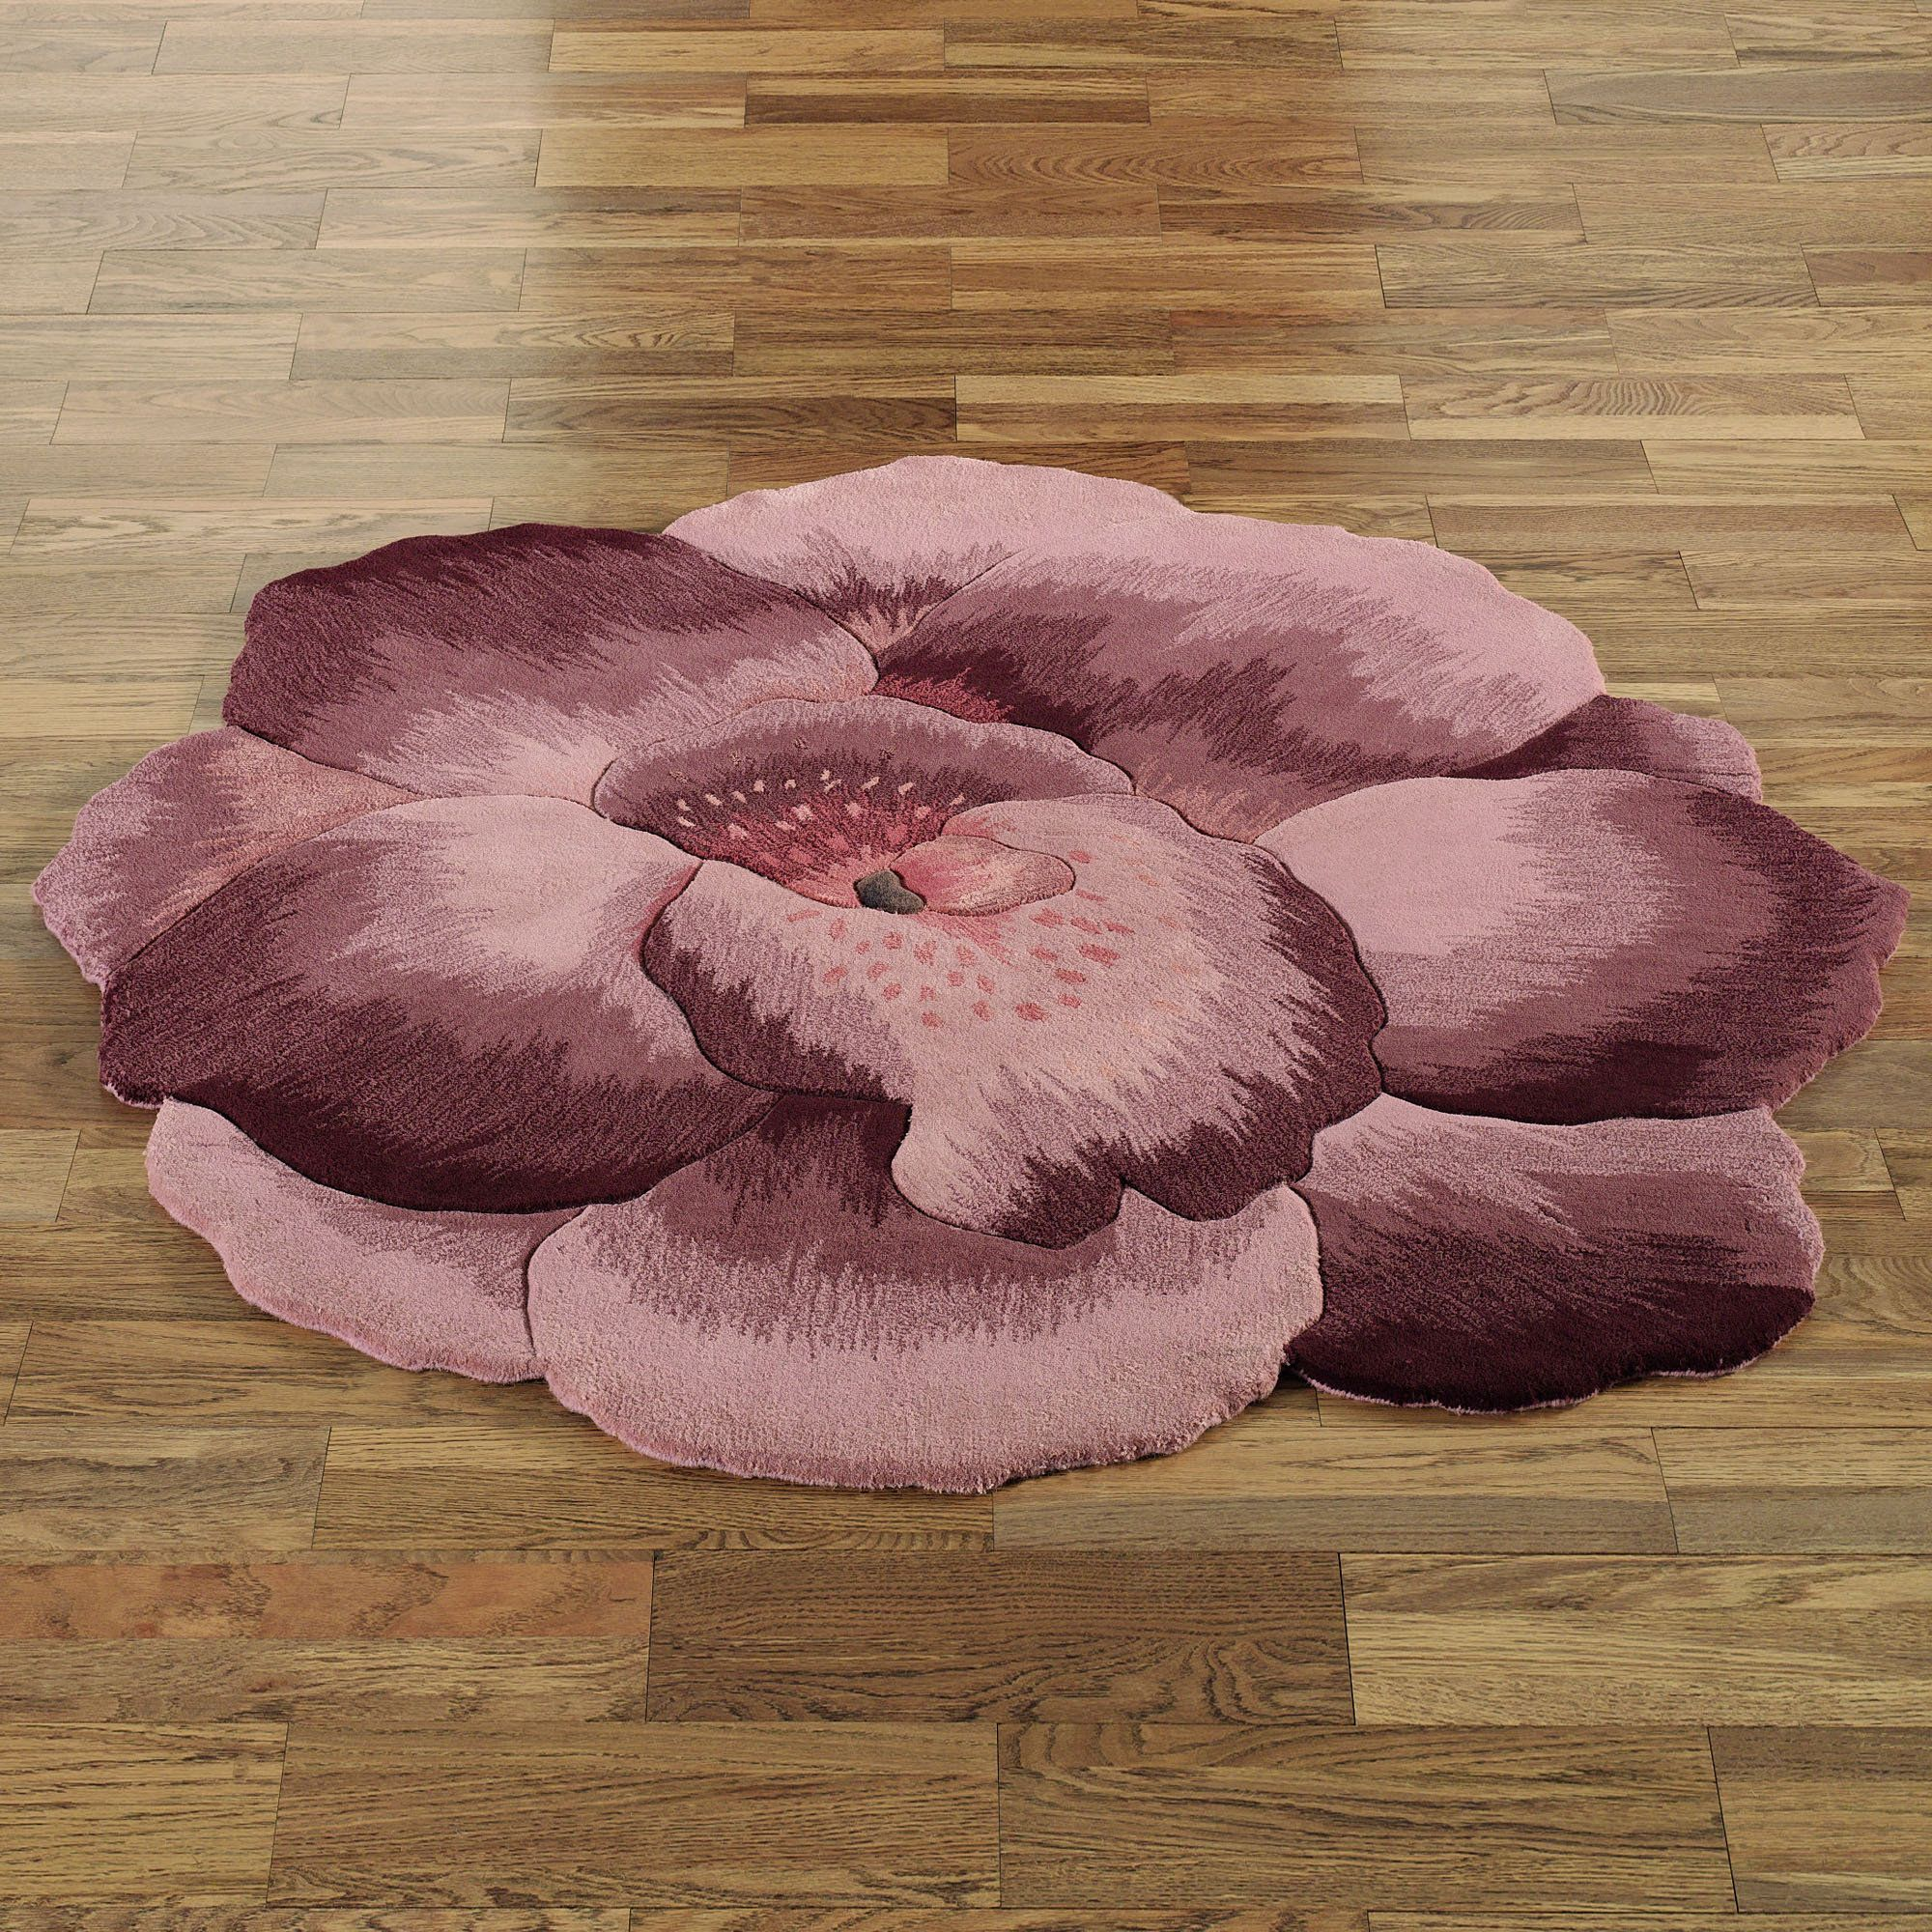 Very large bath rugs search - Pansy Flower Shaped Round Rugs